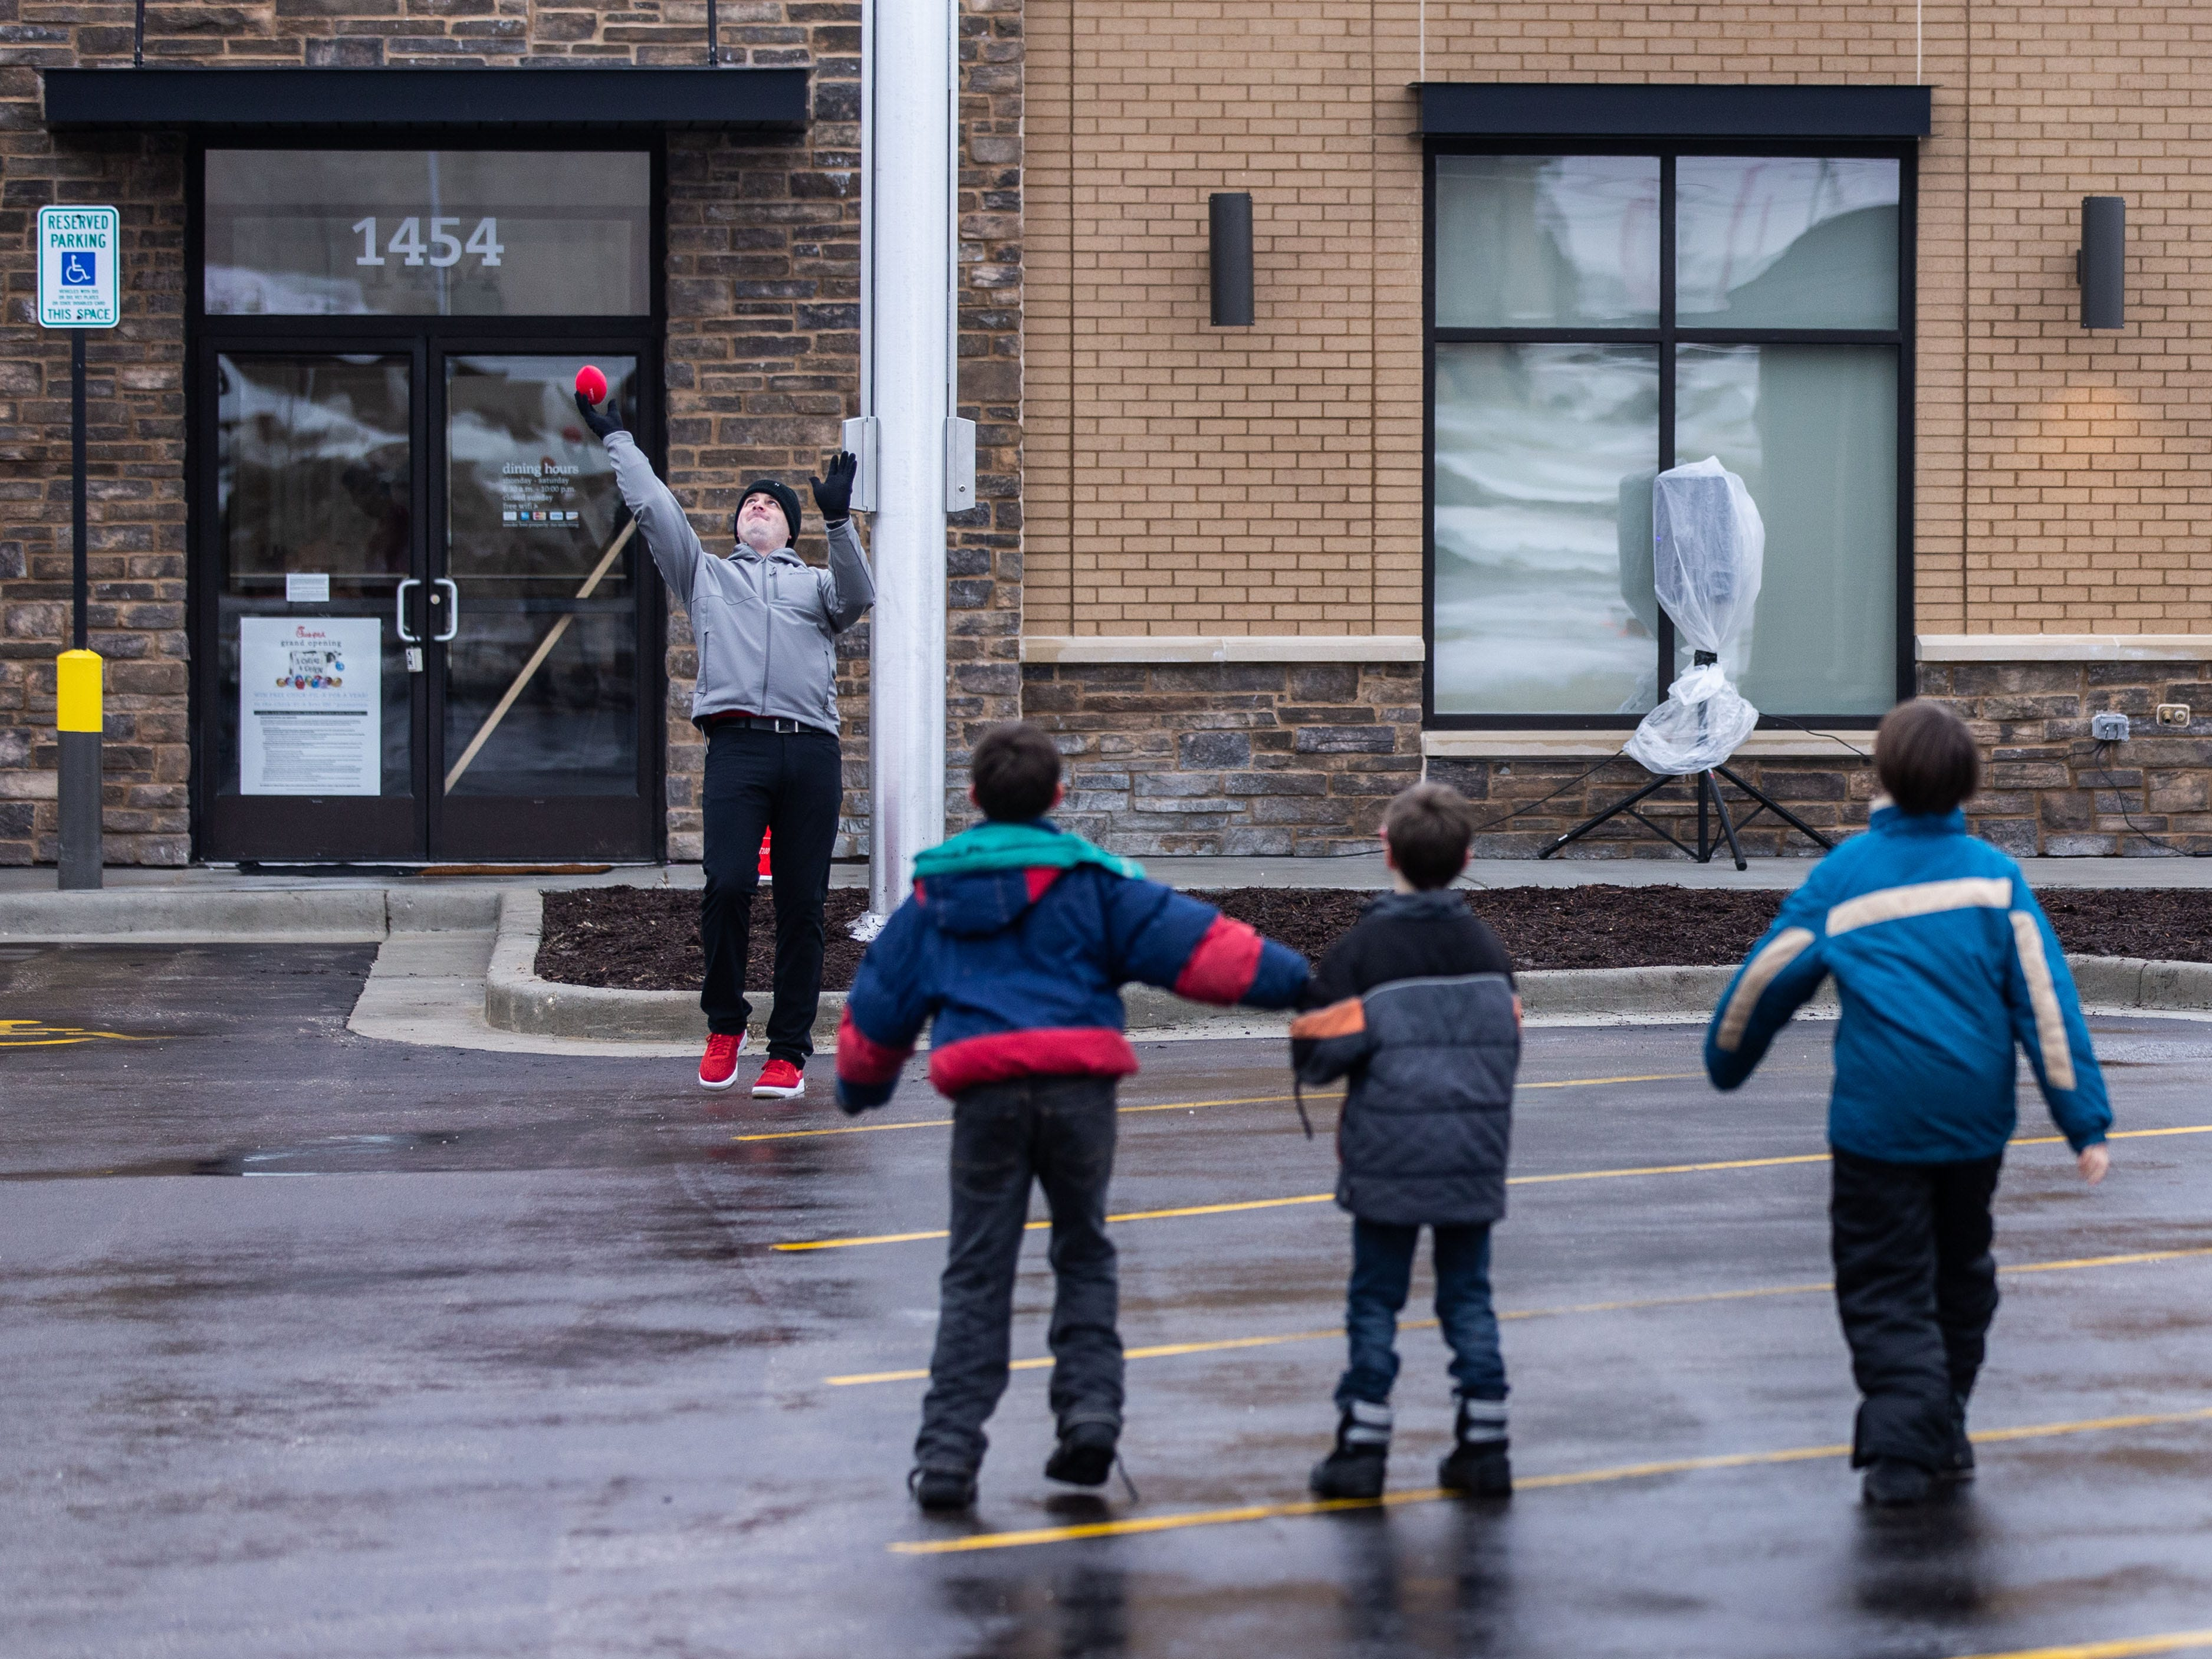 Chick-fil-A employee Matt Peele plays football with campers outside Pewaukee's new Chick-fil-A location at 1454 Capitol Drive on Wednesday, March 13, ahead of Thursday's grand opening. Chick-fil-A is holding The First 100 Camp Out contest which offers a year's worth of free Chick-fil-A to the first 100 participants.